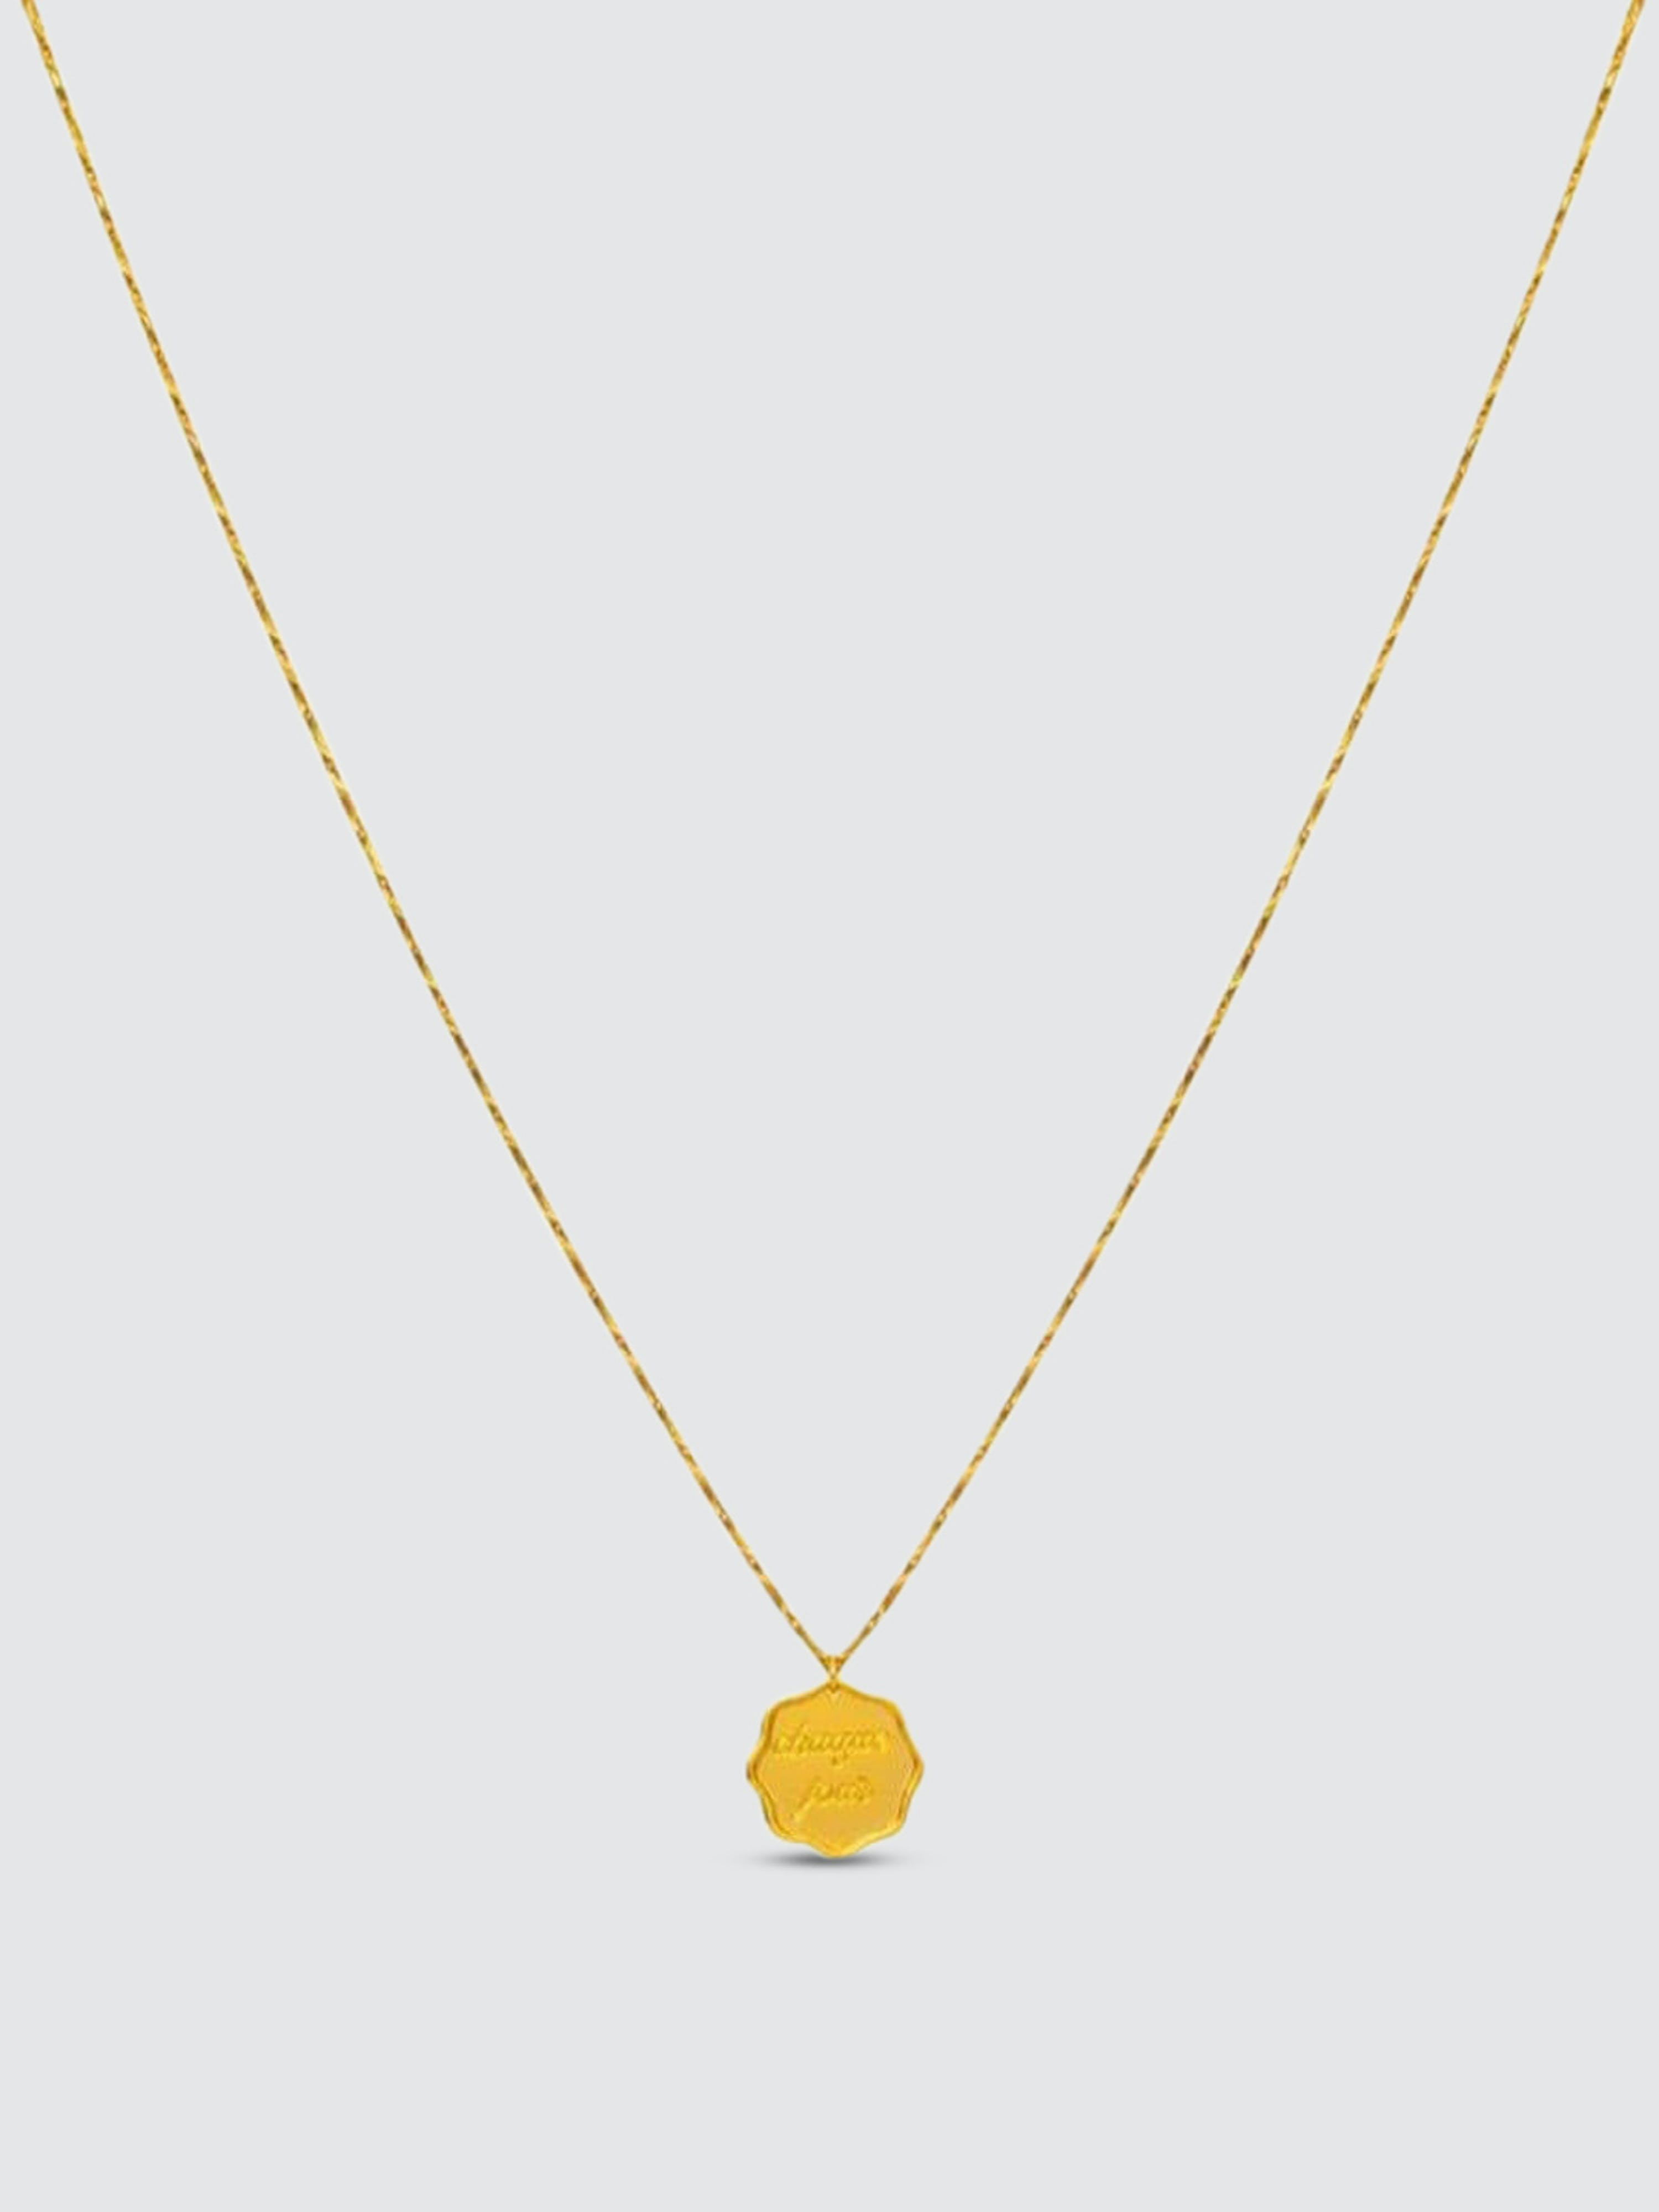 Jonesy Wood Chaque Jour Necklace In Gold